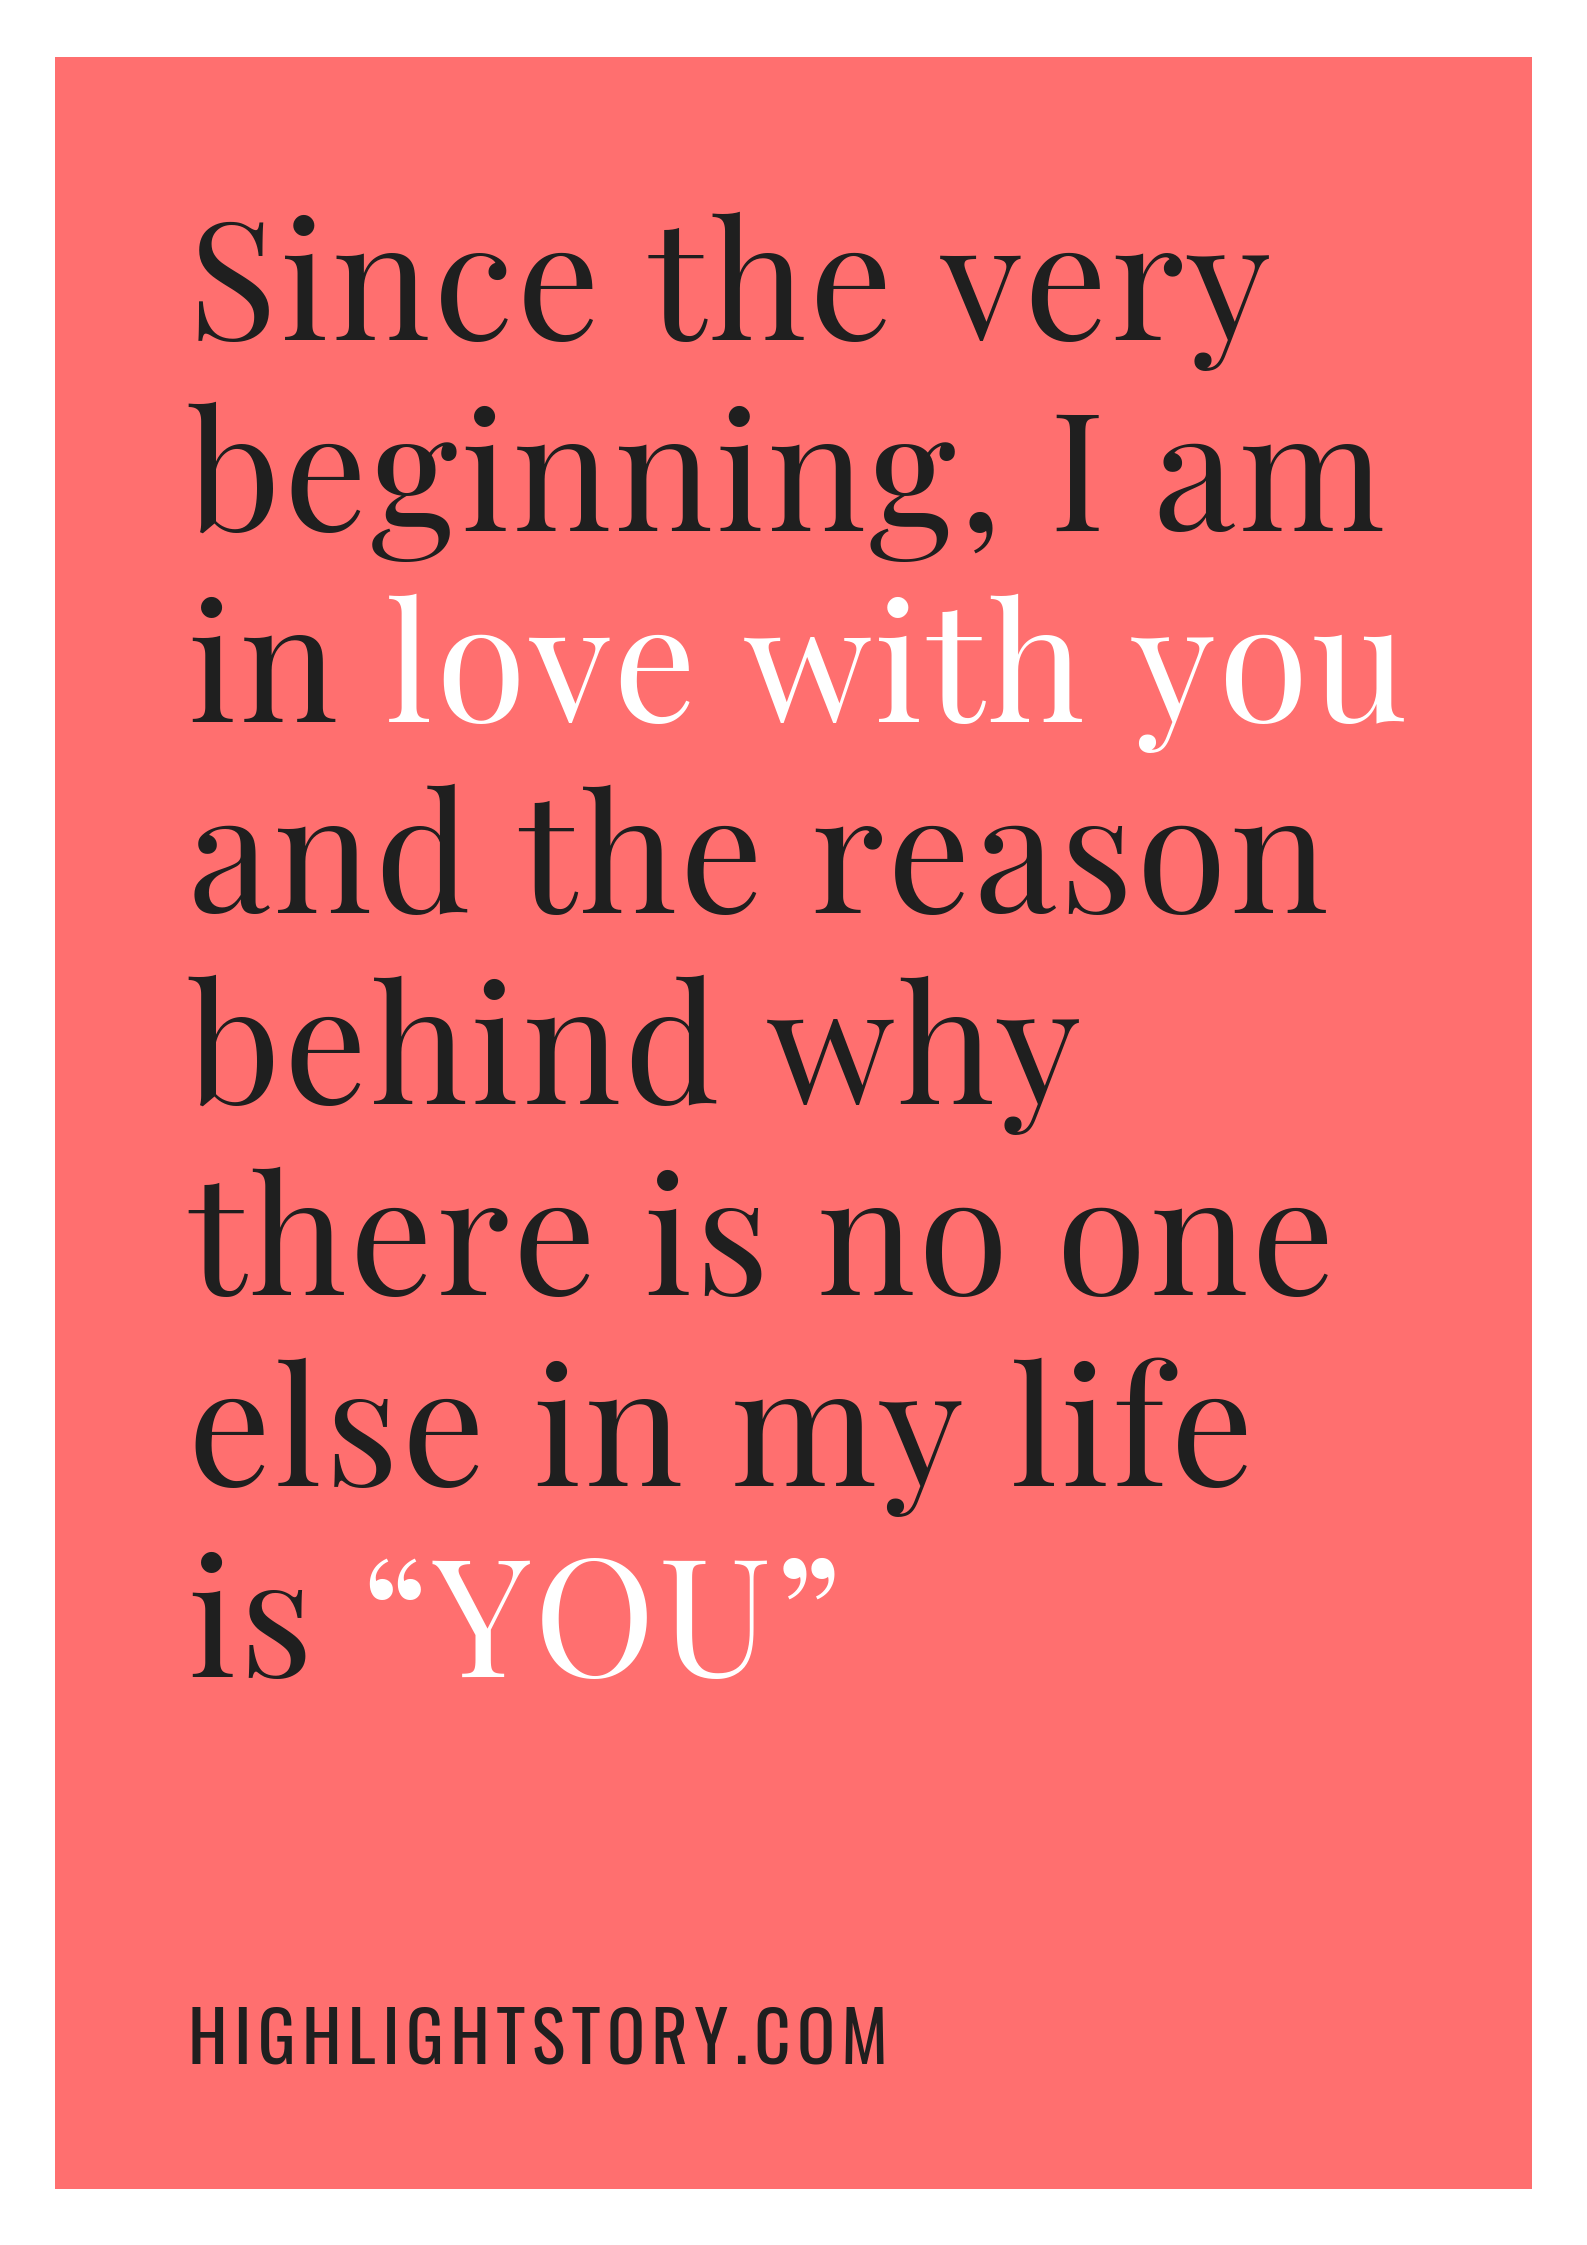 """Since the very beginning, I am in love with you and the reason behind why there is no one else in my life is """"YOU"""""""